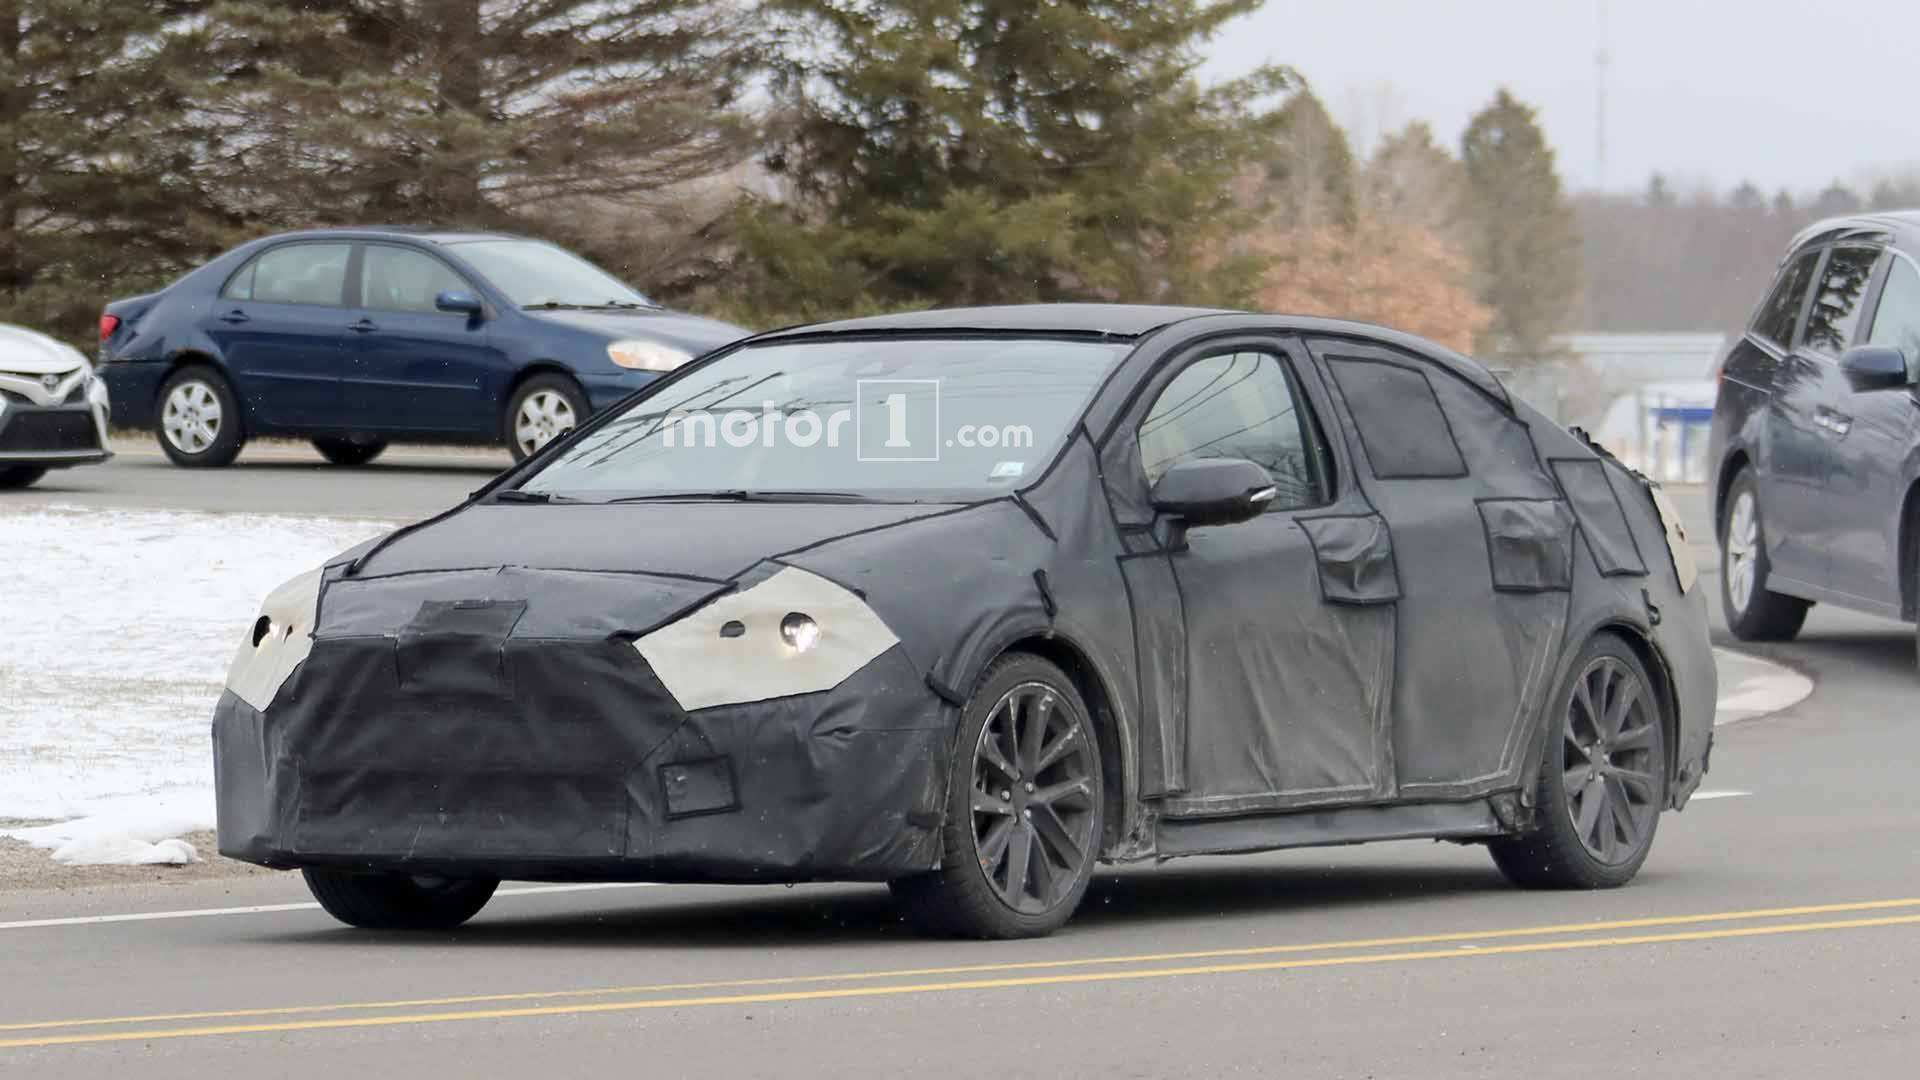 82 The Best 2020 New Toyota Avensis Spy Shots Release